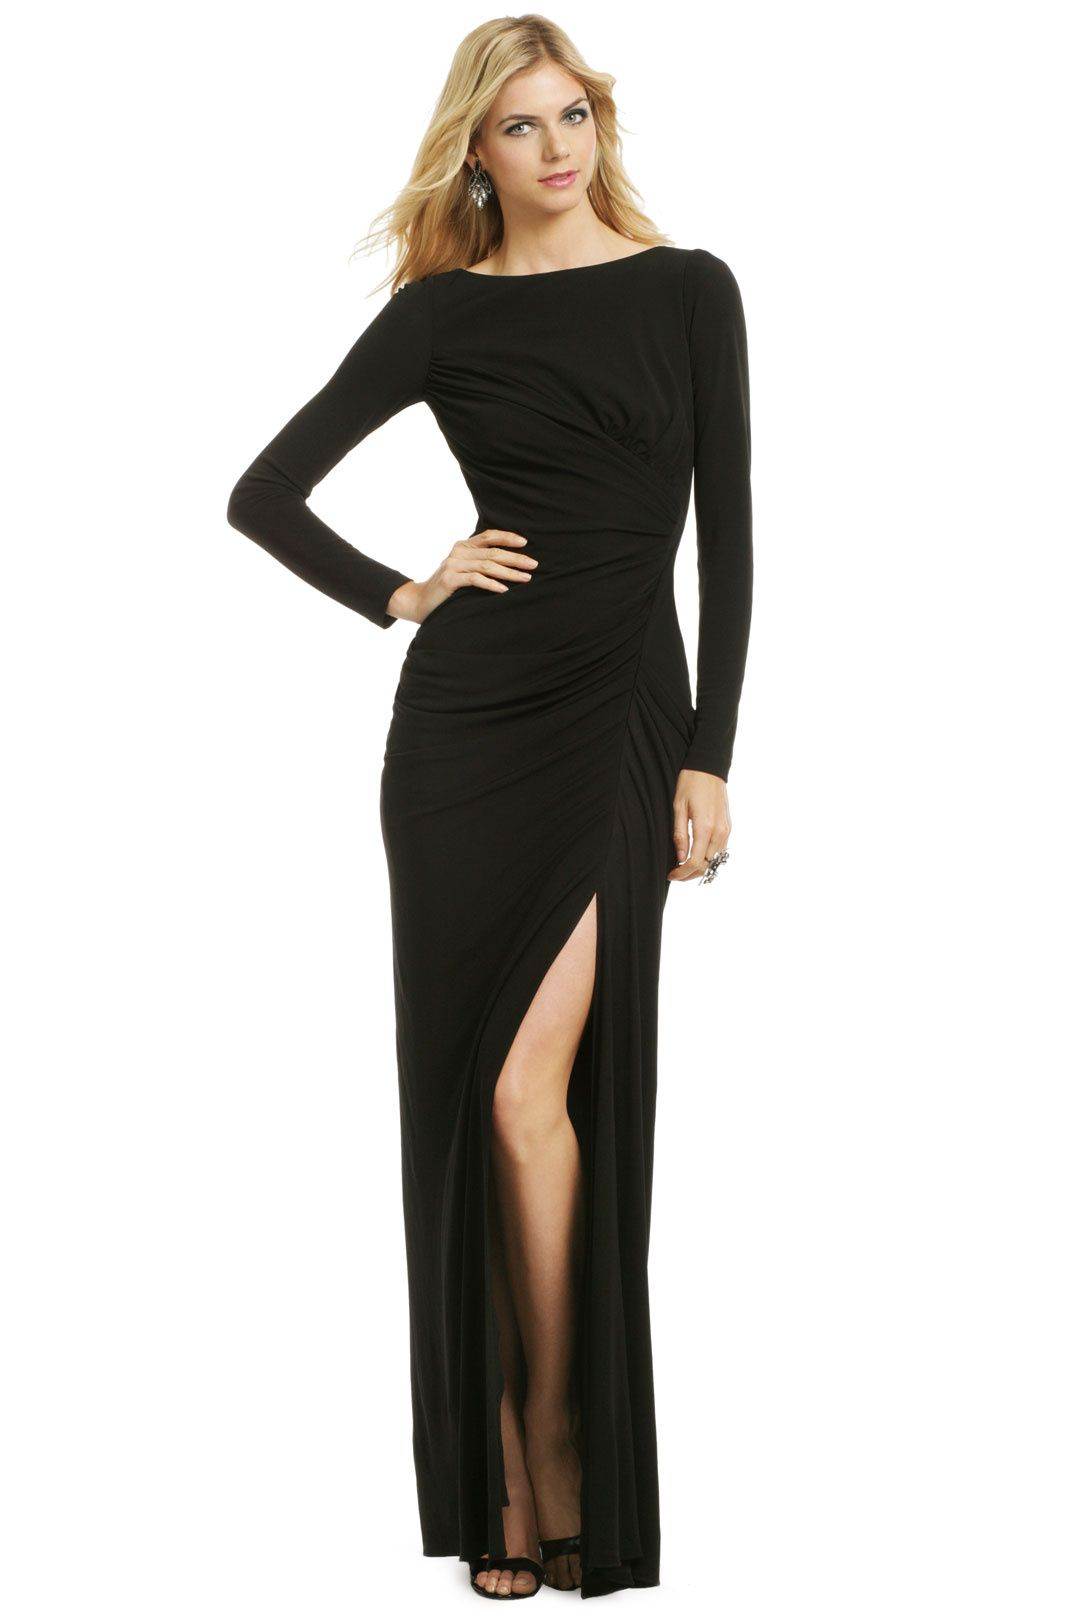 Water Lilies Maxi Dress by Badgley Mischka for $135 | Rent The ...